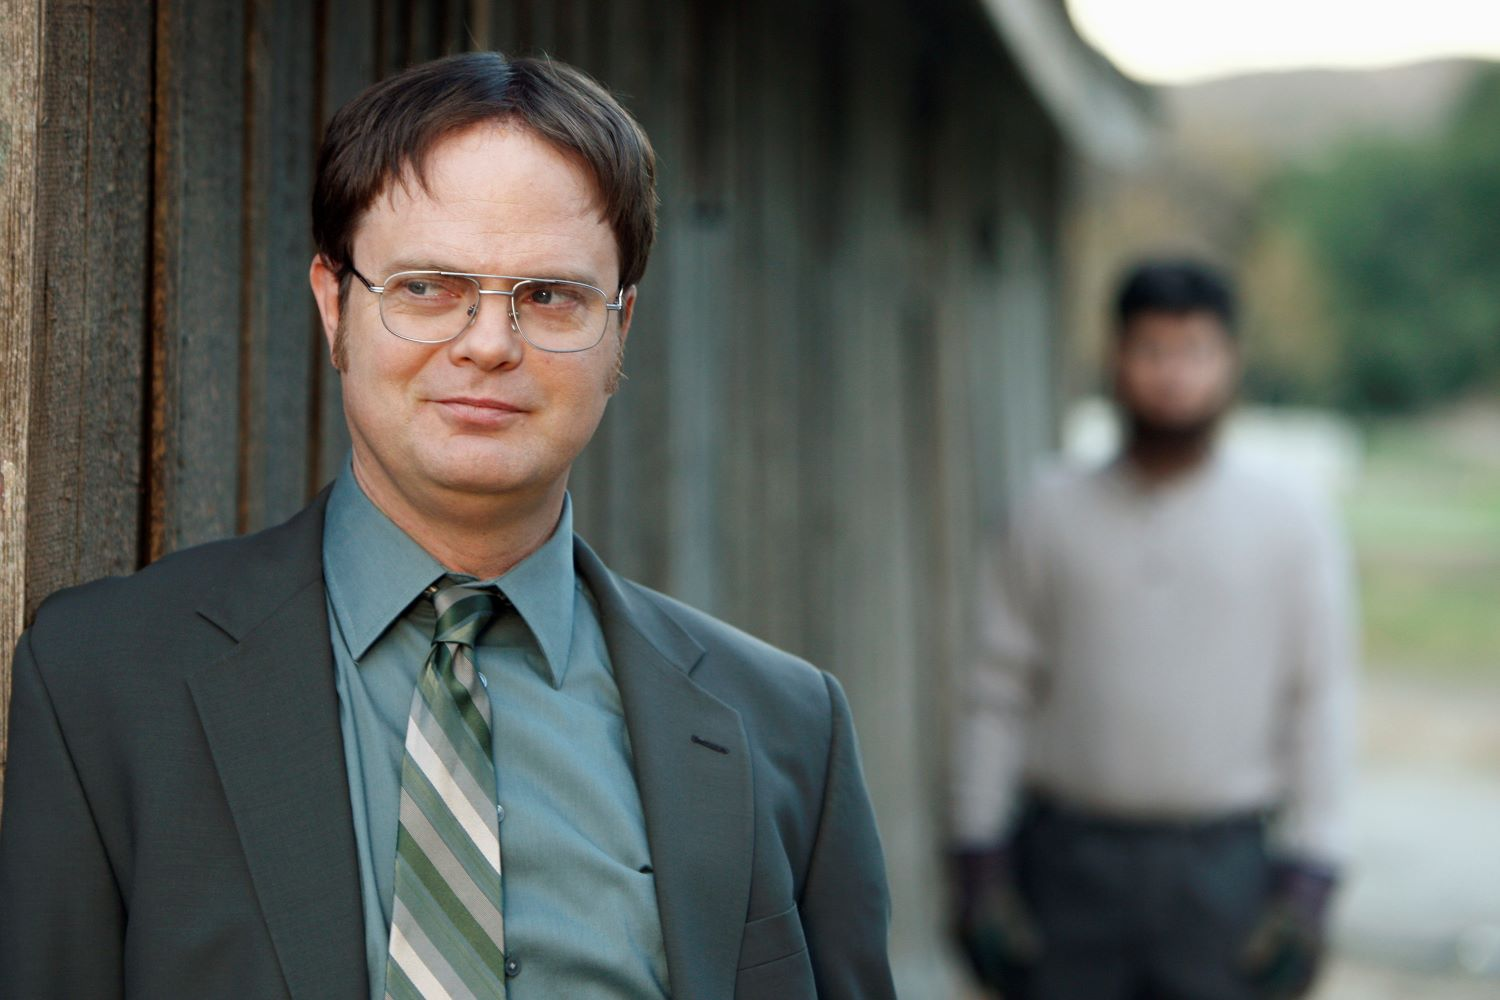 Rainn Wilson and Michael Schur in 'The Office'